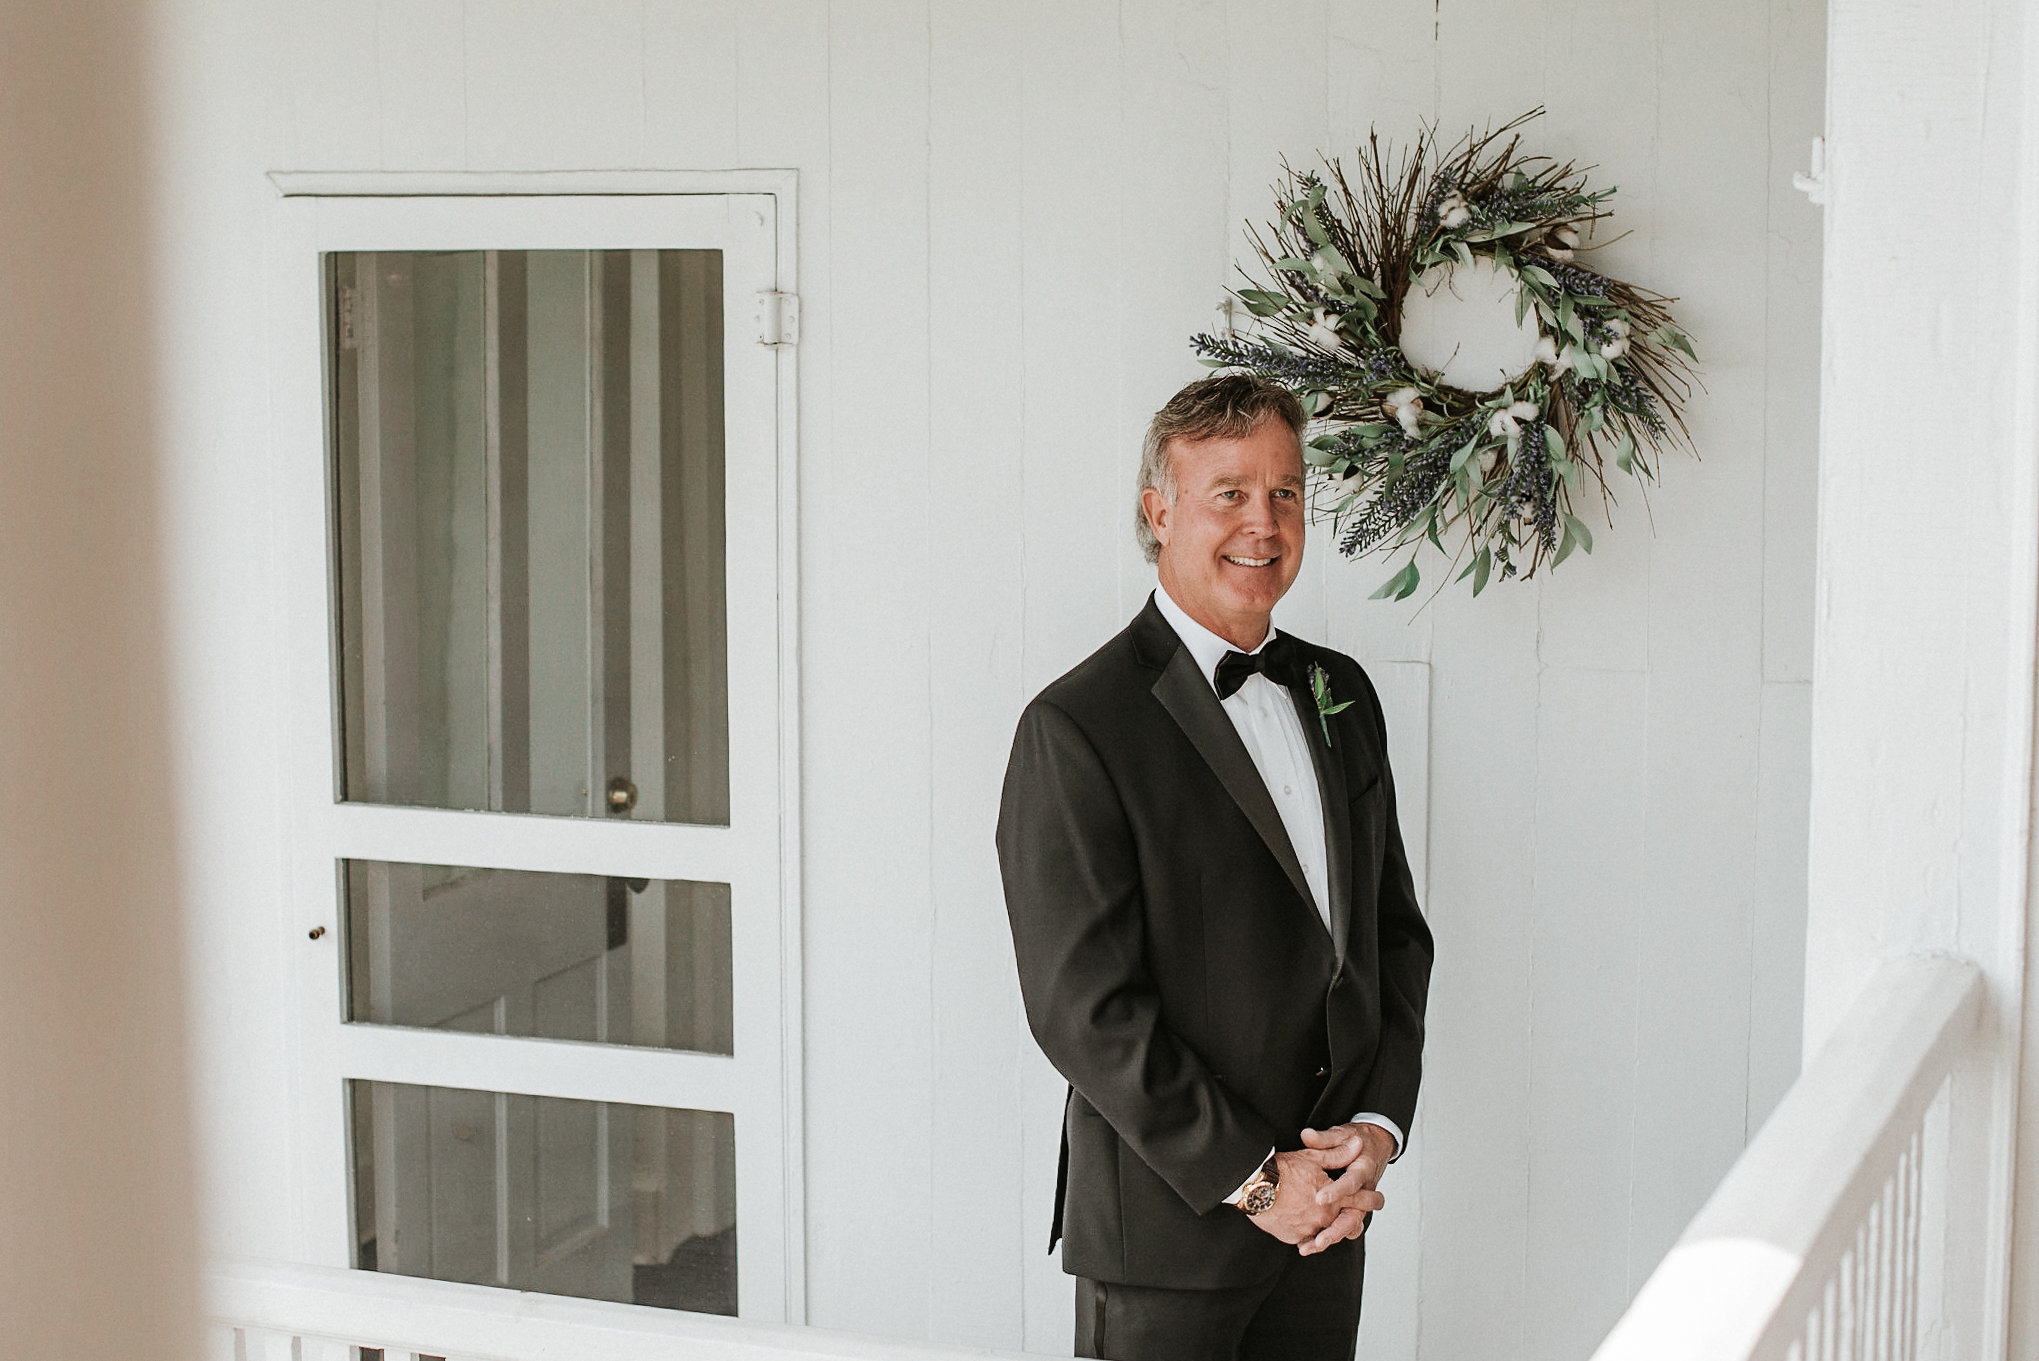 Father of the bride standing on balcony